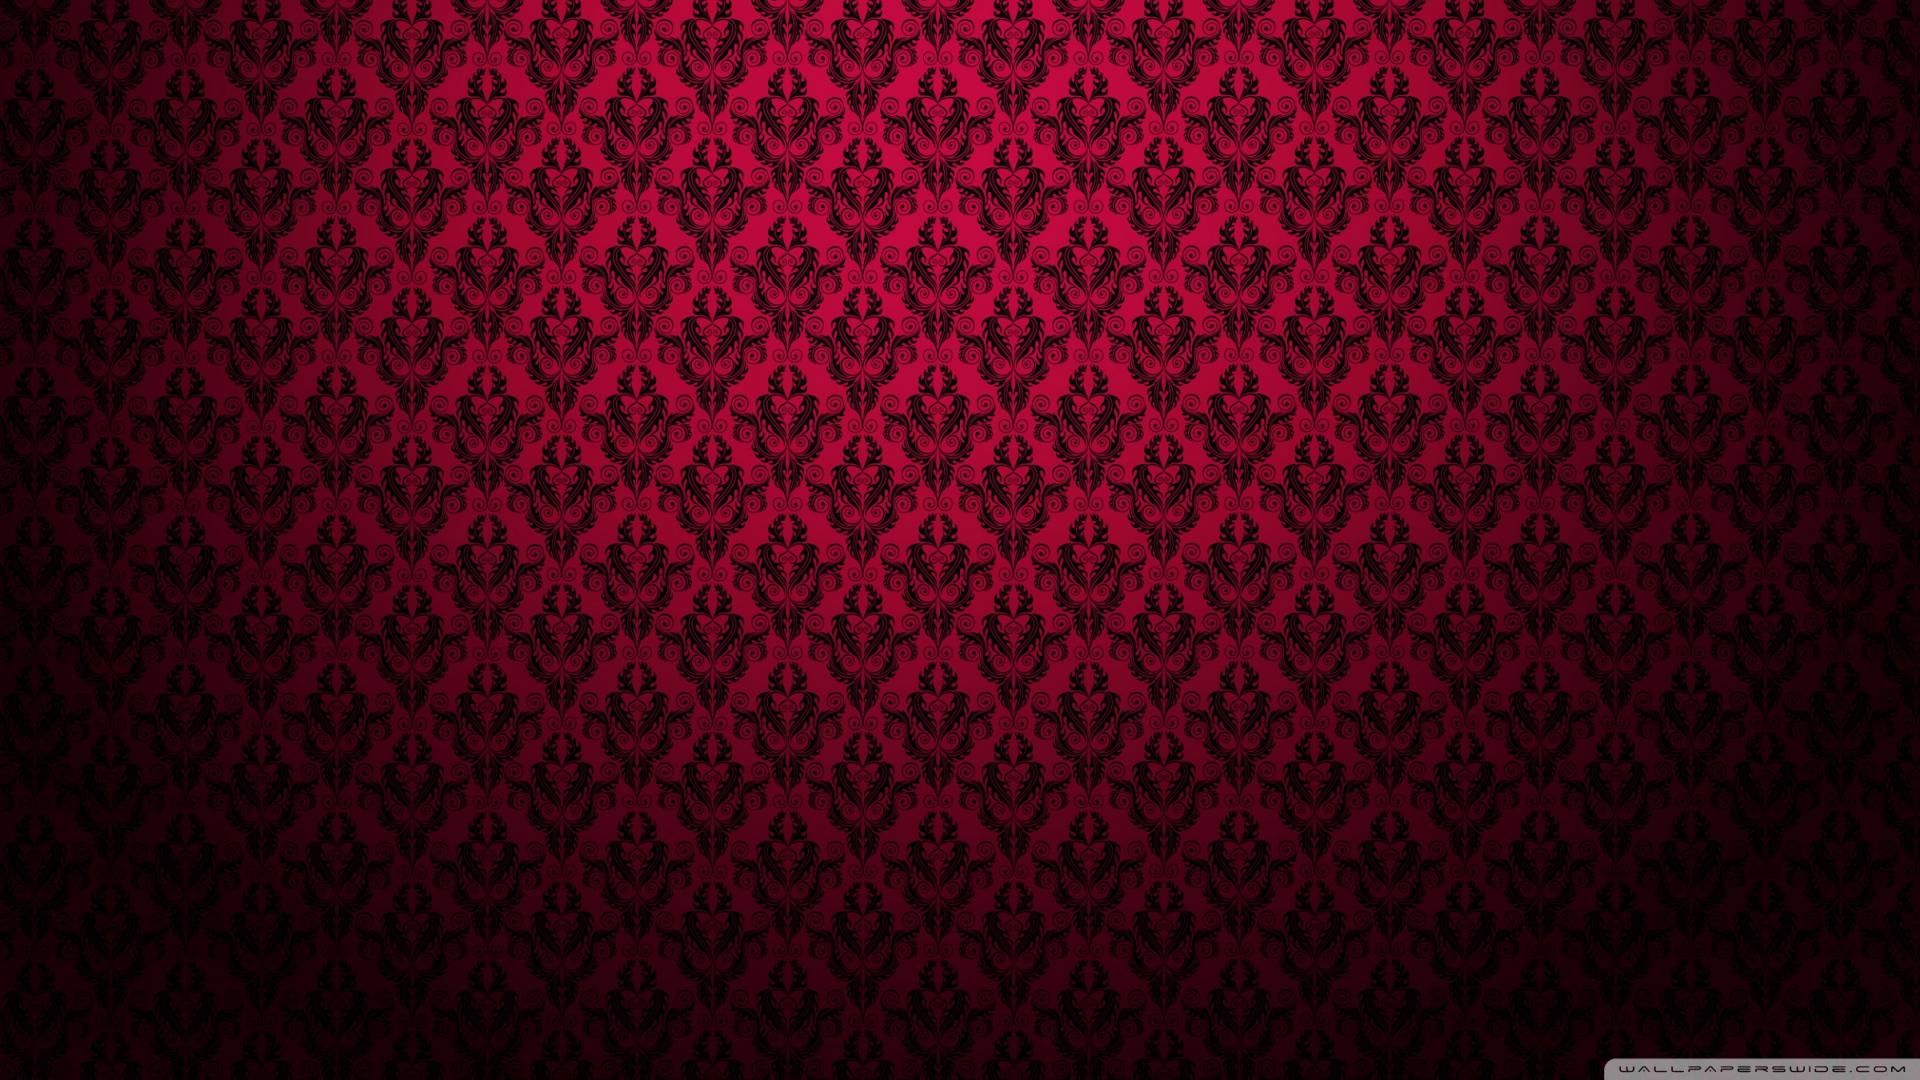 Home Wallpaper Pattern red and black damask pattern wallpaper home pinterest damask. red